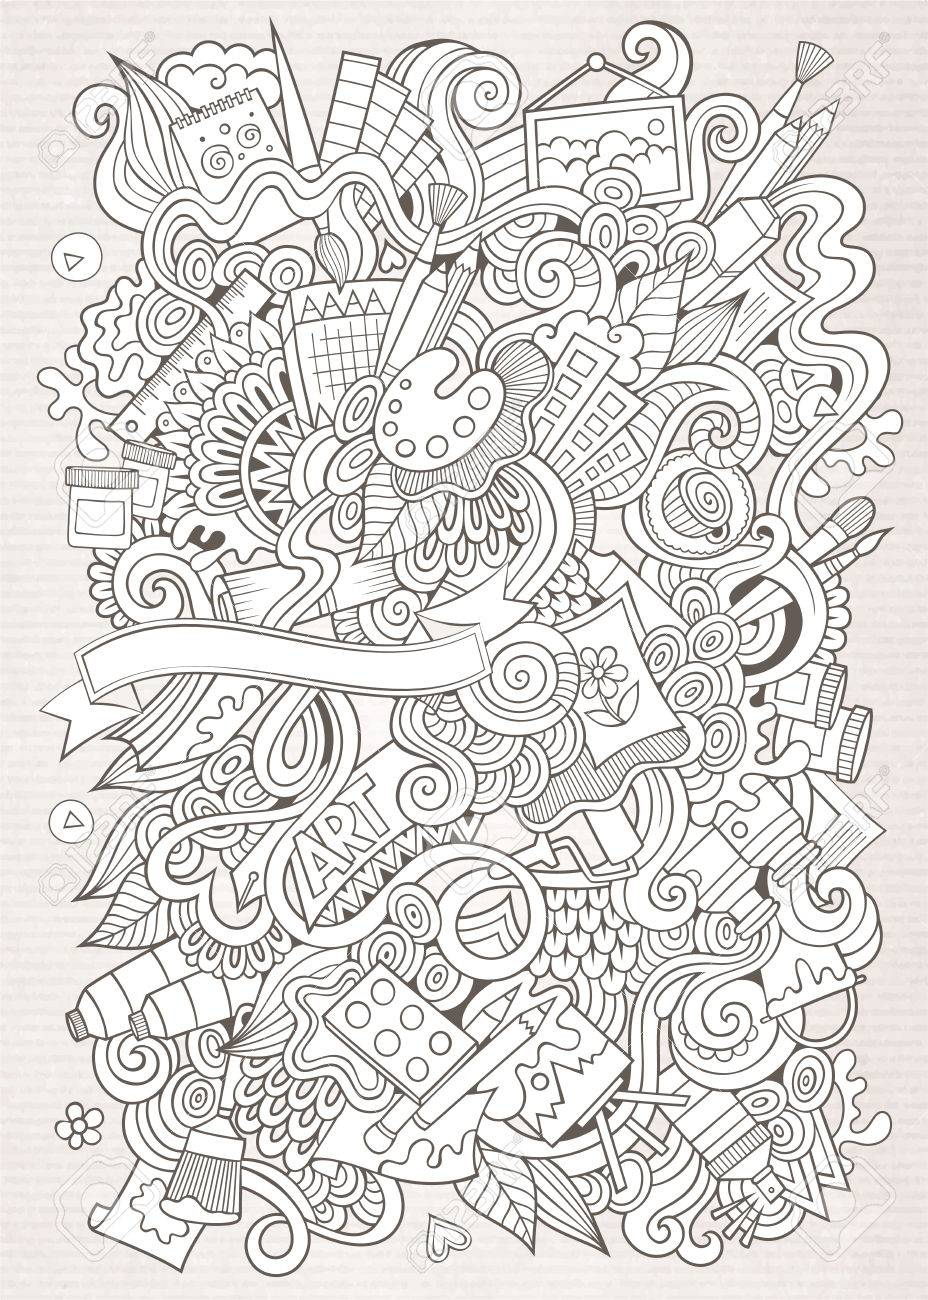 Cartoon vector sketchy doodles hand drawn art and craft background - 40498405